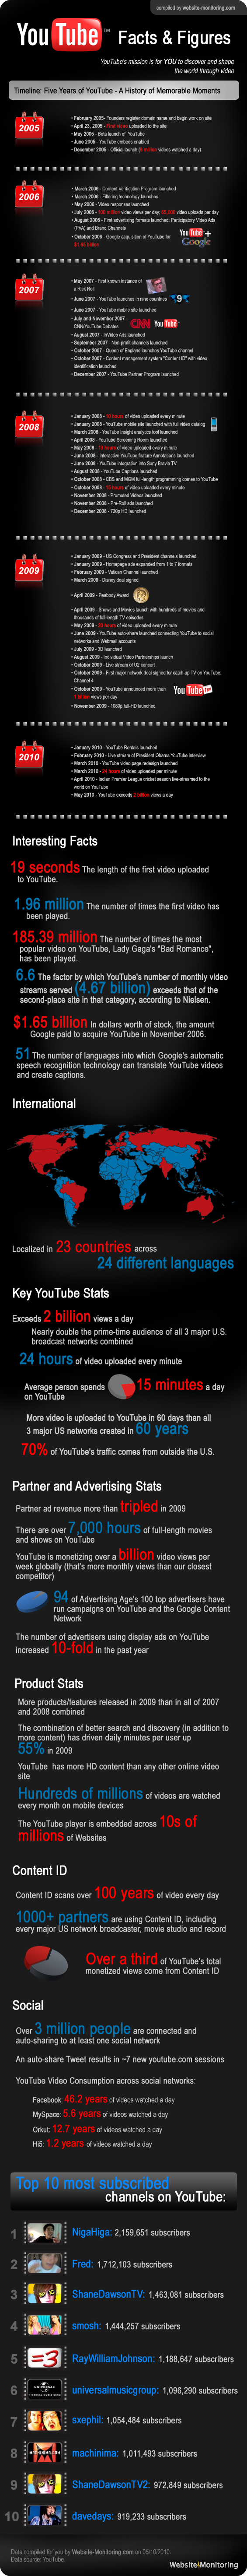 Click Here for How To Make Money From YouTube - Do You Know That YouTube Surpasses Two Billion Video Views Daily?